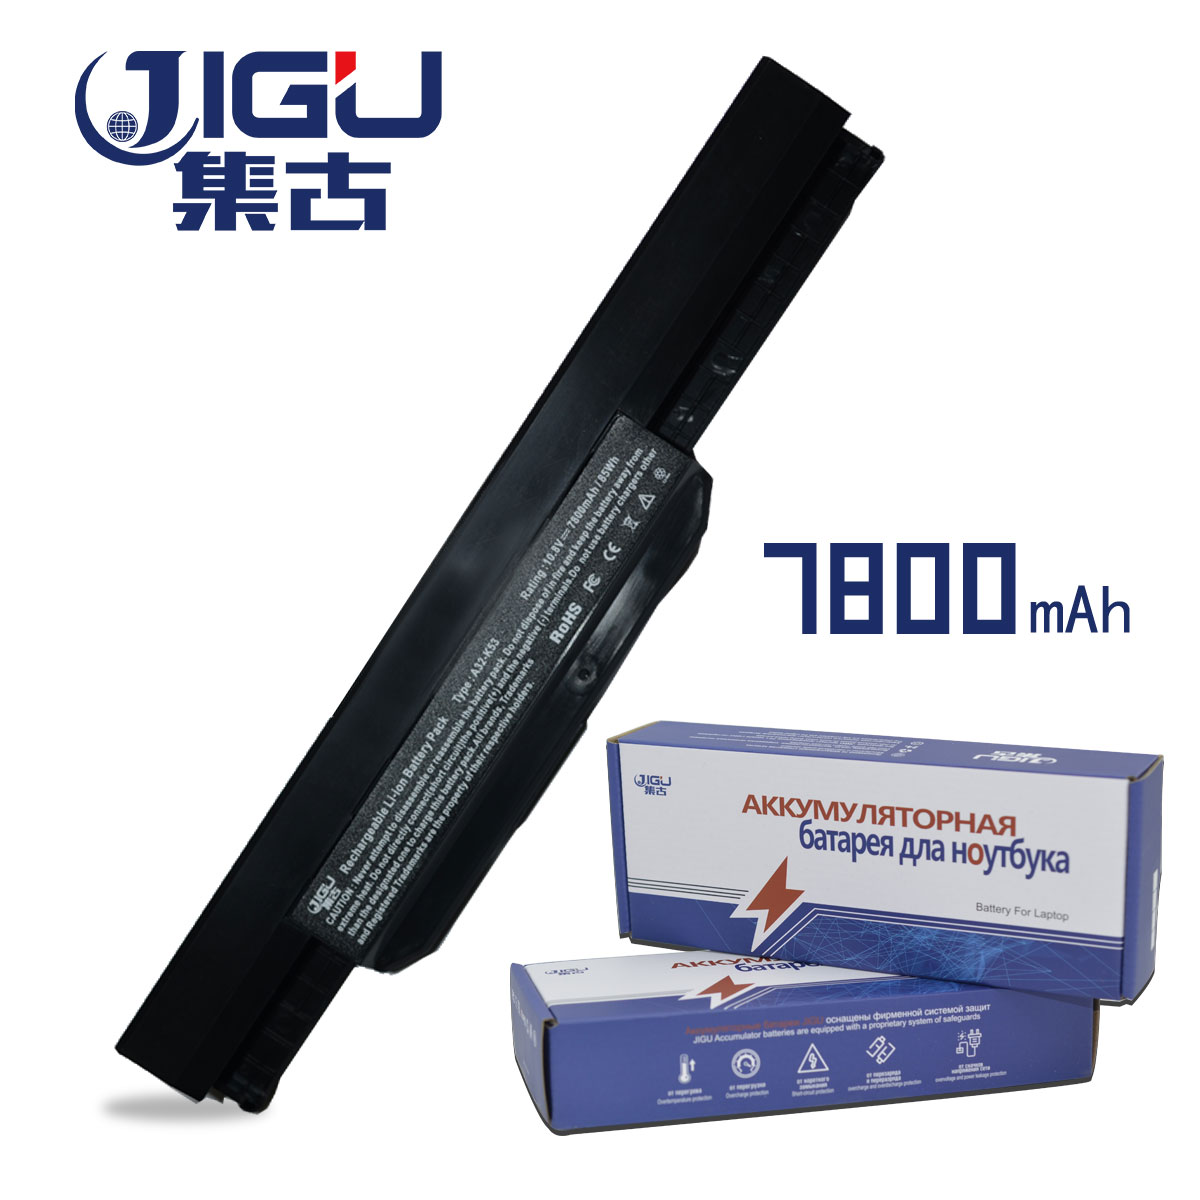 JIGU Replacement Laptop Battery For ASUS K53 K53B K53BR K53BY K53E K53S K53SC K53T K53TA K53TK K53U K53Z 9Cell